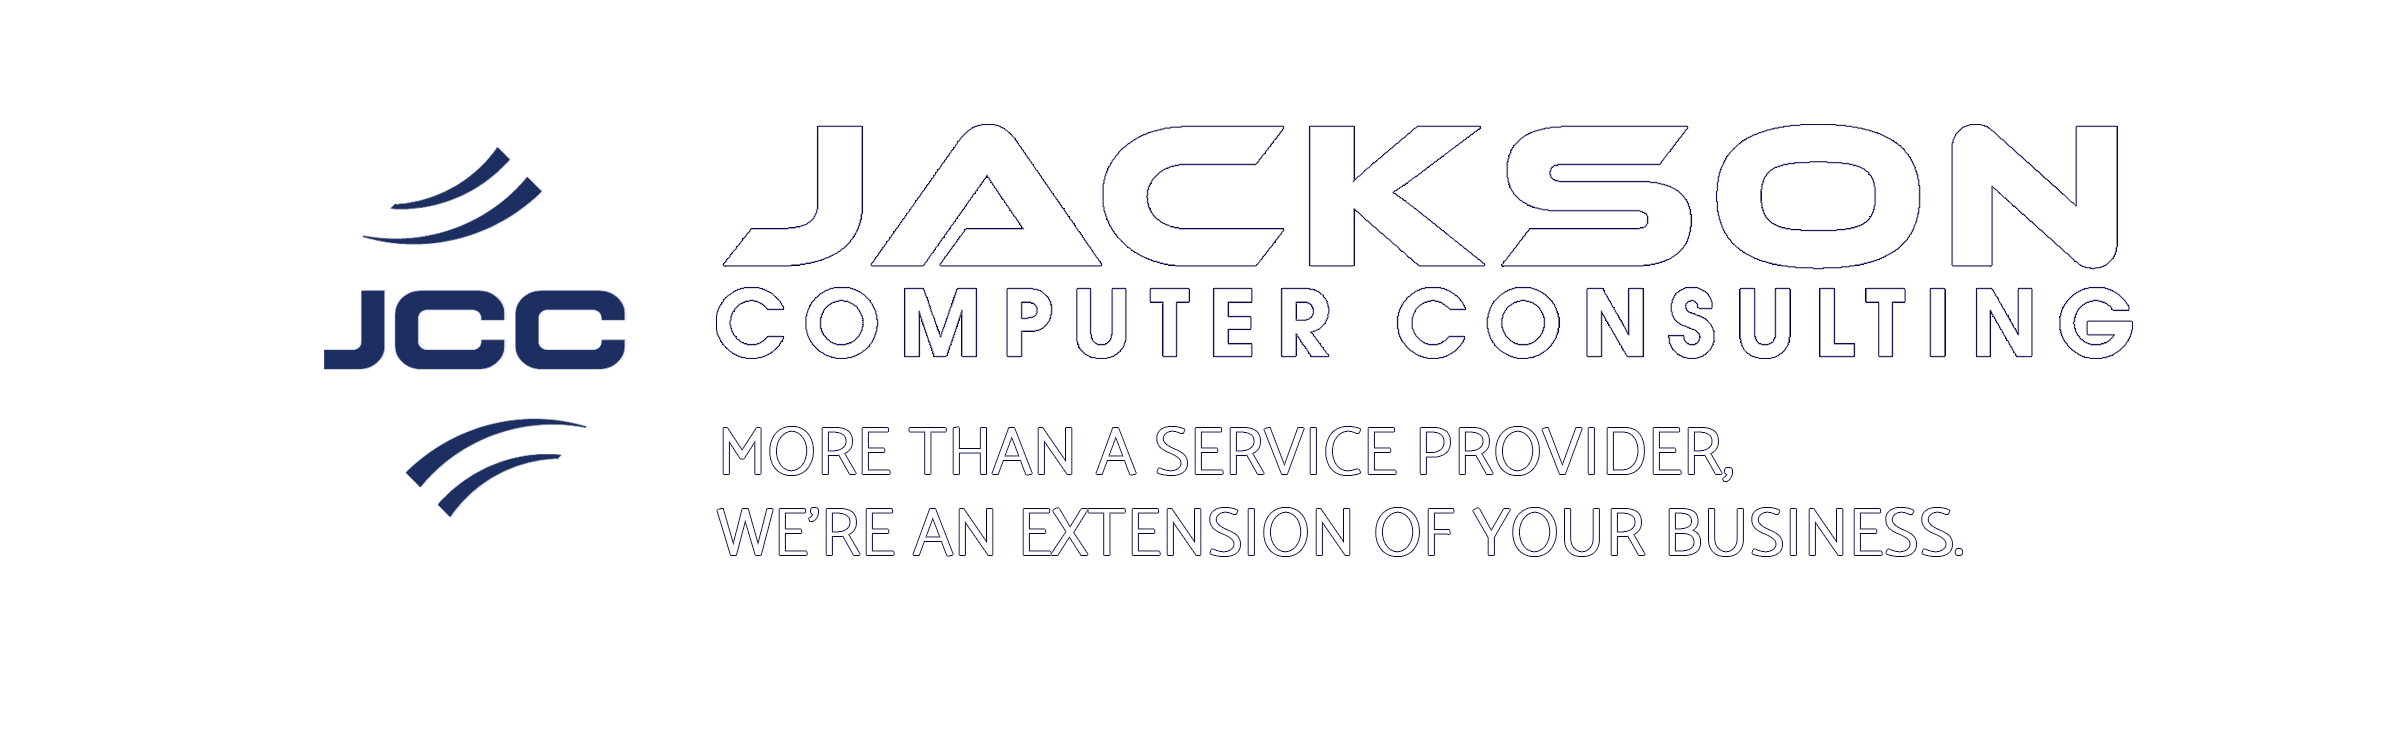 Jackson Computer Consulting, LLC